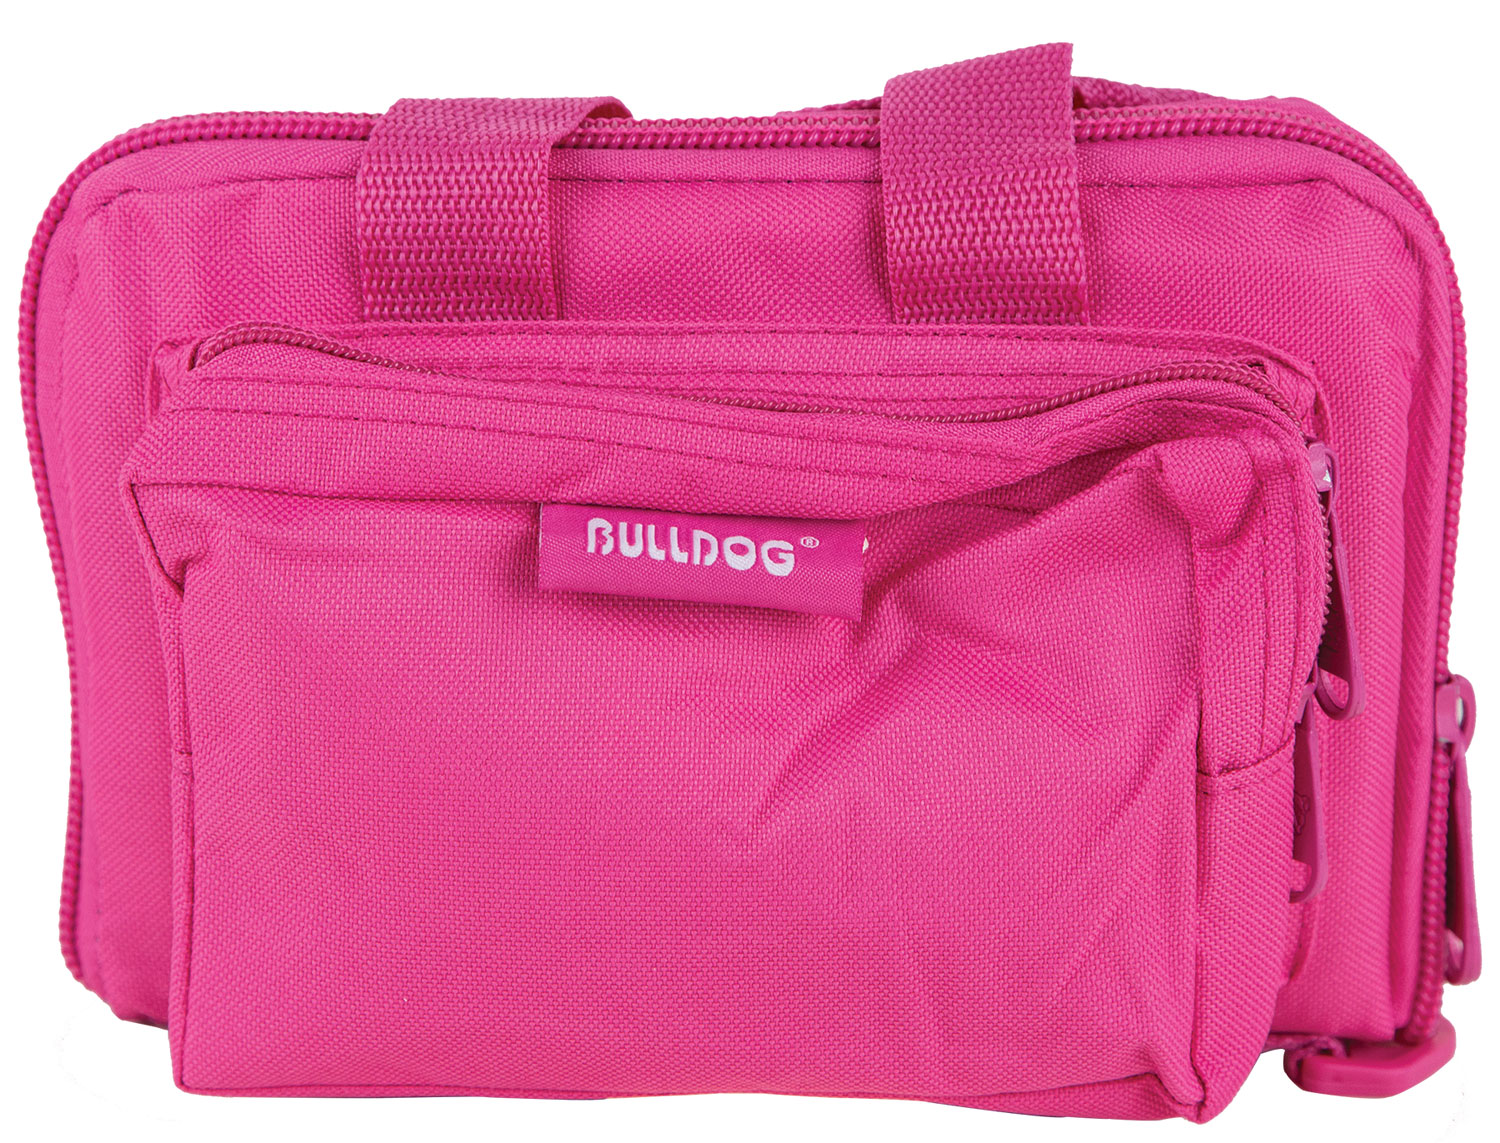 Bulldog Case Company BD919P     XS MINI RANGE BAG  PNK